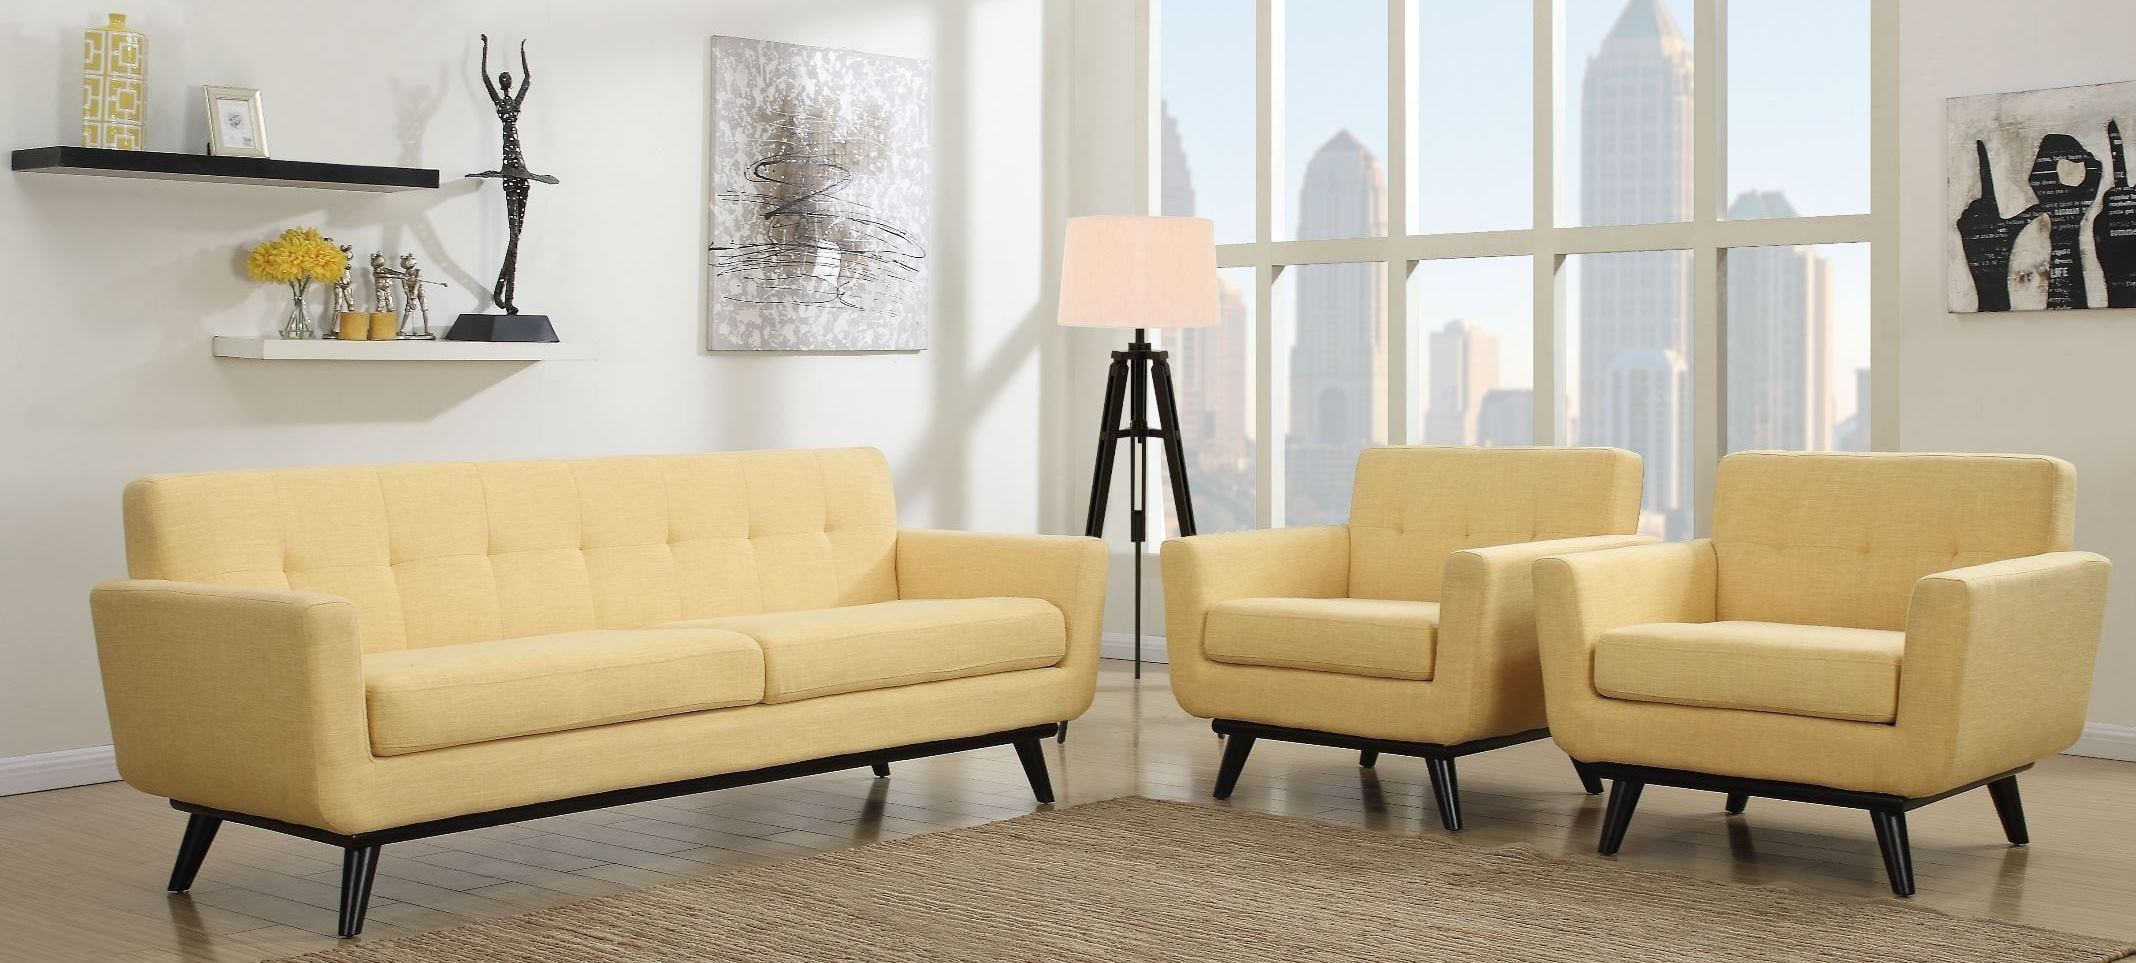 james mustard yellow linen living room set from tov a55 coleman furniture. Black Bedroom Furniture Sets. Home Design Ideas